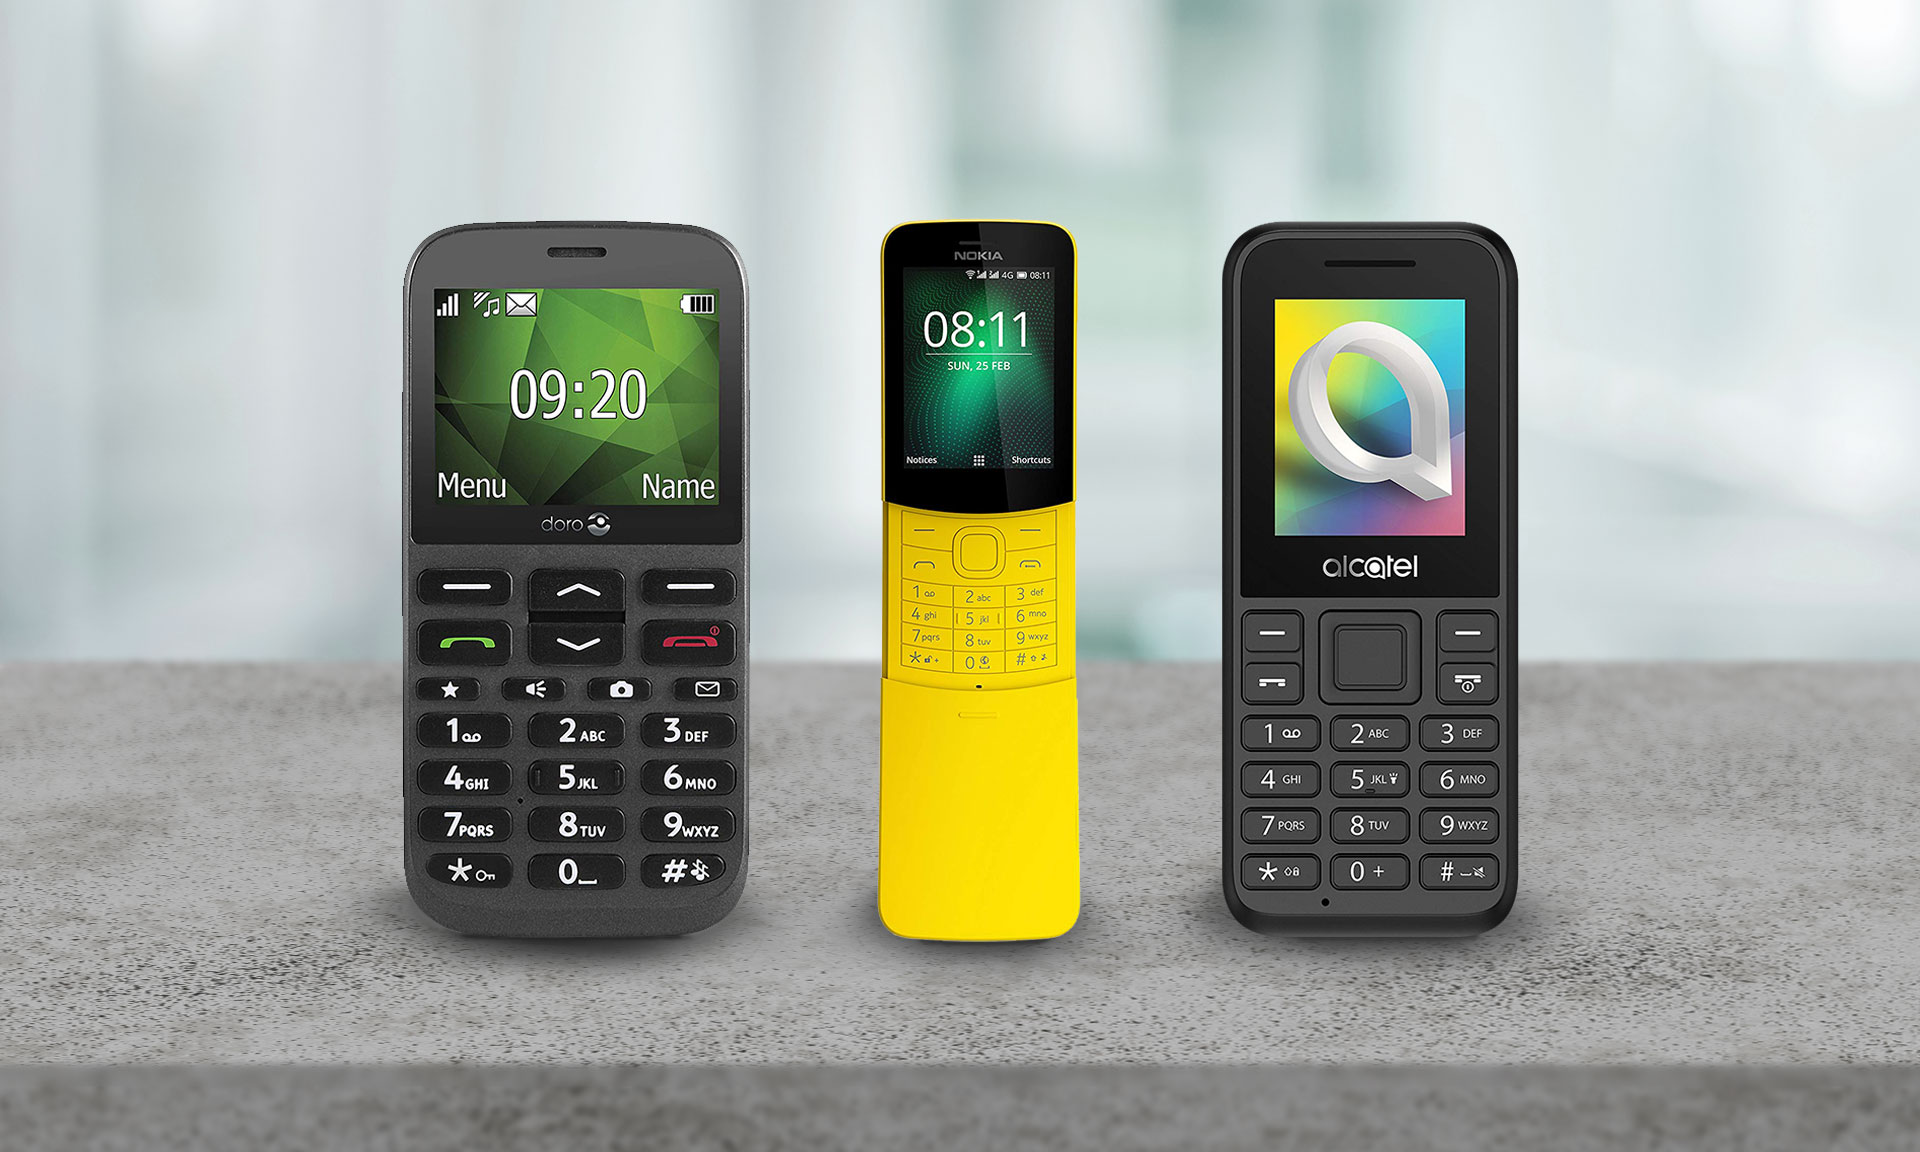 Best New Simple Phones From Just 15 Doro Alcatel And Nokia On Test